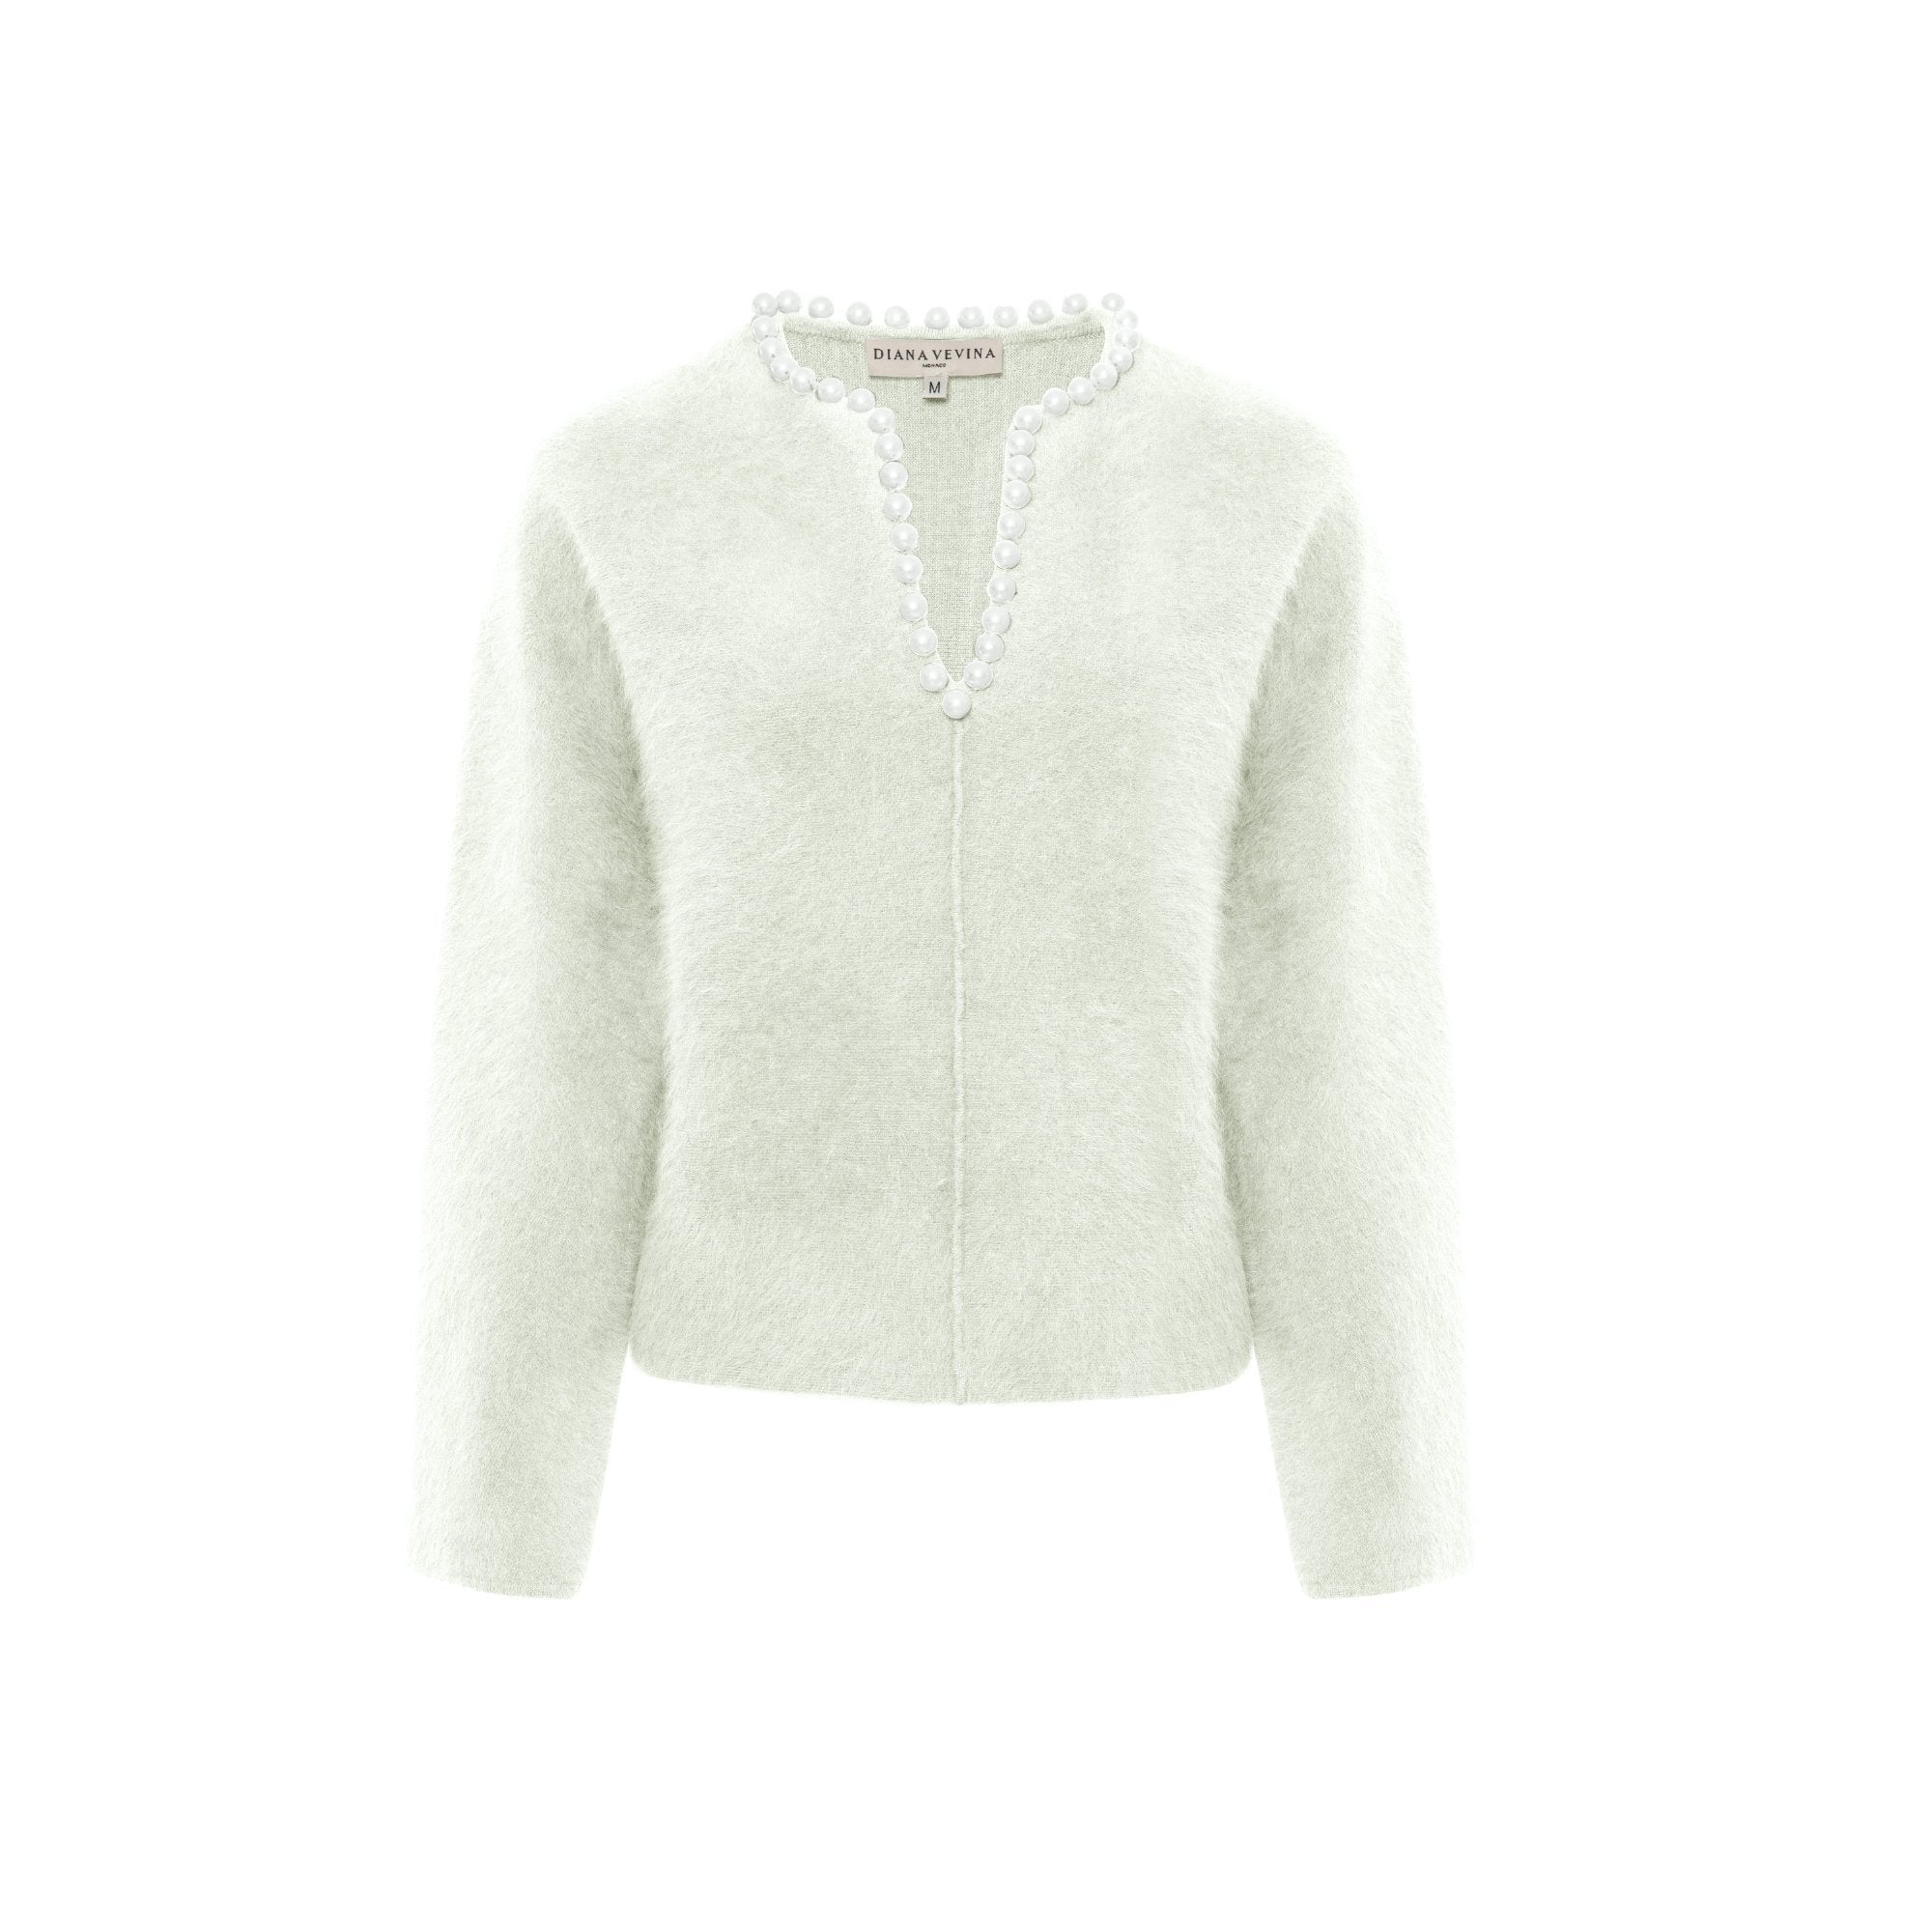 DIANA VEVINA White Pearl V-Neck Sweatshirt | MADA IN CHINA